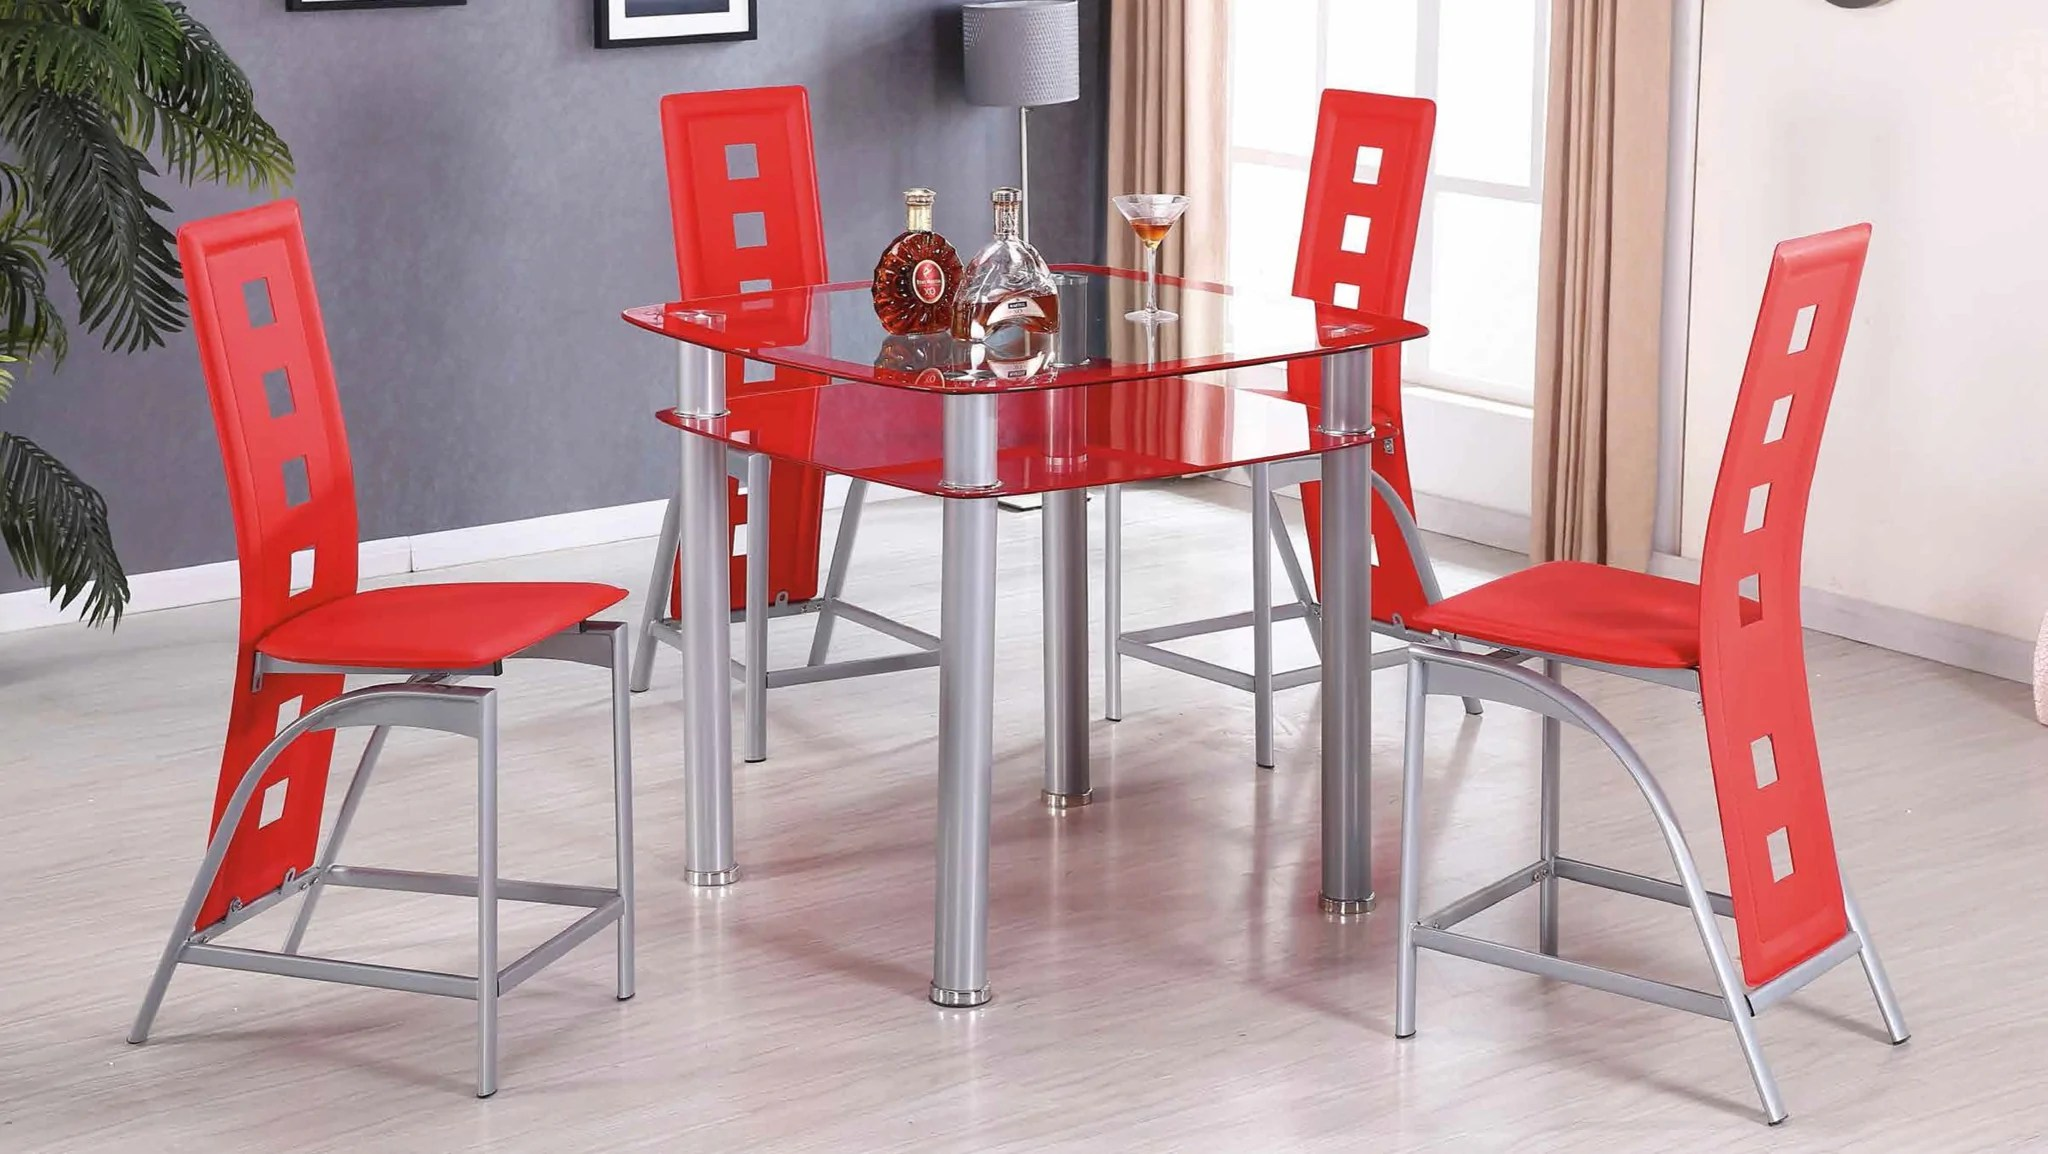 red counter height dining chairs realcomfort adirondack chair modern glass group by furniture world sale 5 piece set